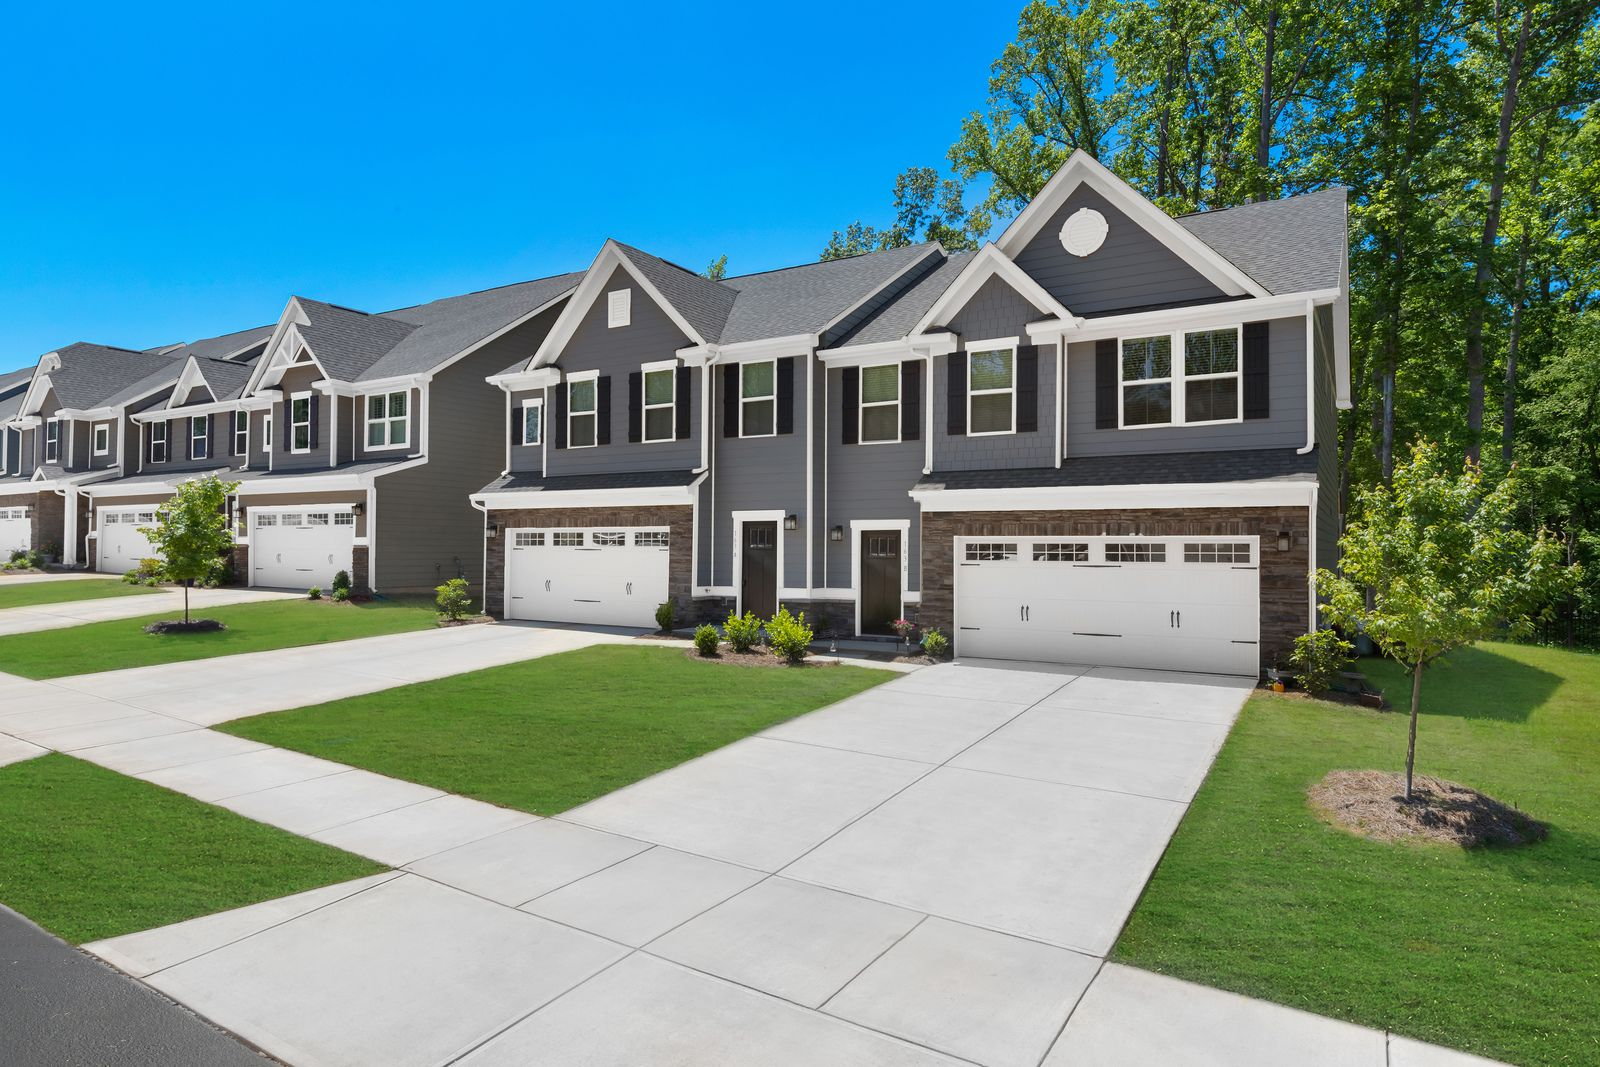 Best Priced New Homes in the Cox Mill School District. From Upper $300s:Own one of these 35 spacious new townhomes in the Highland Creek area of Concord.Join the VIP List for exclusive updates and the lowest pricing!